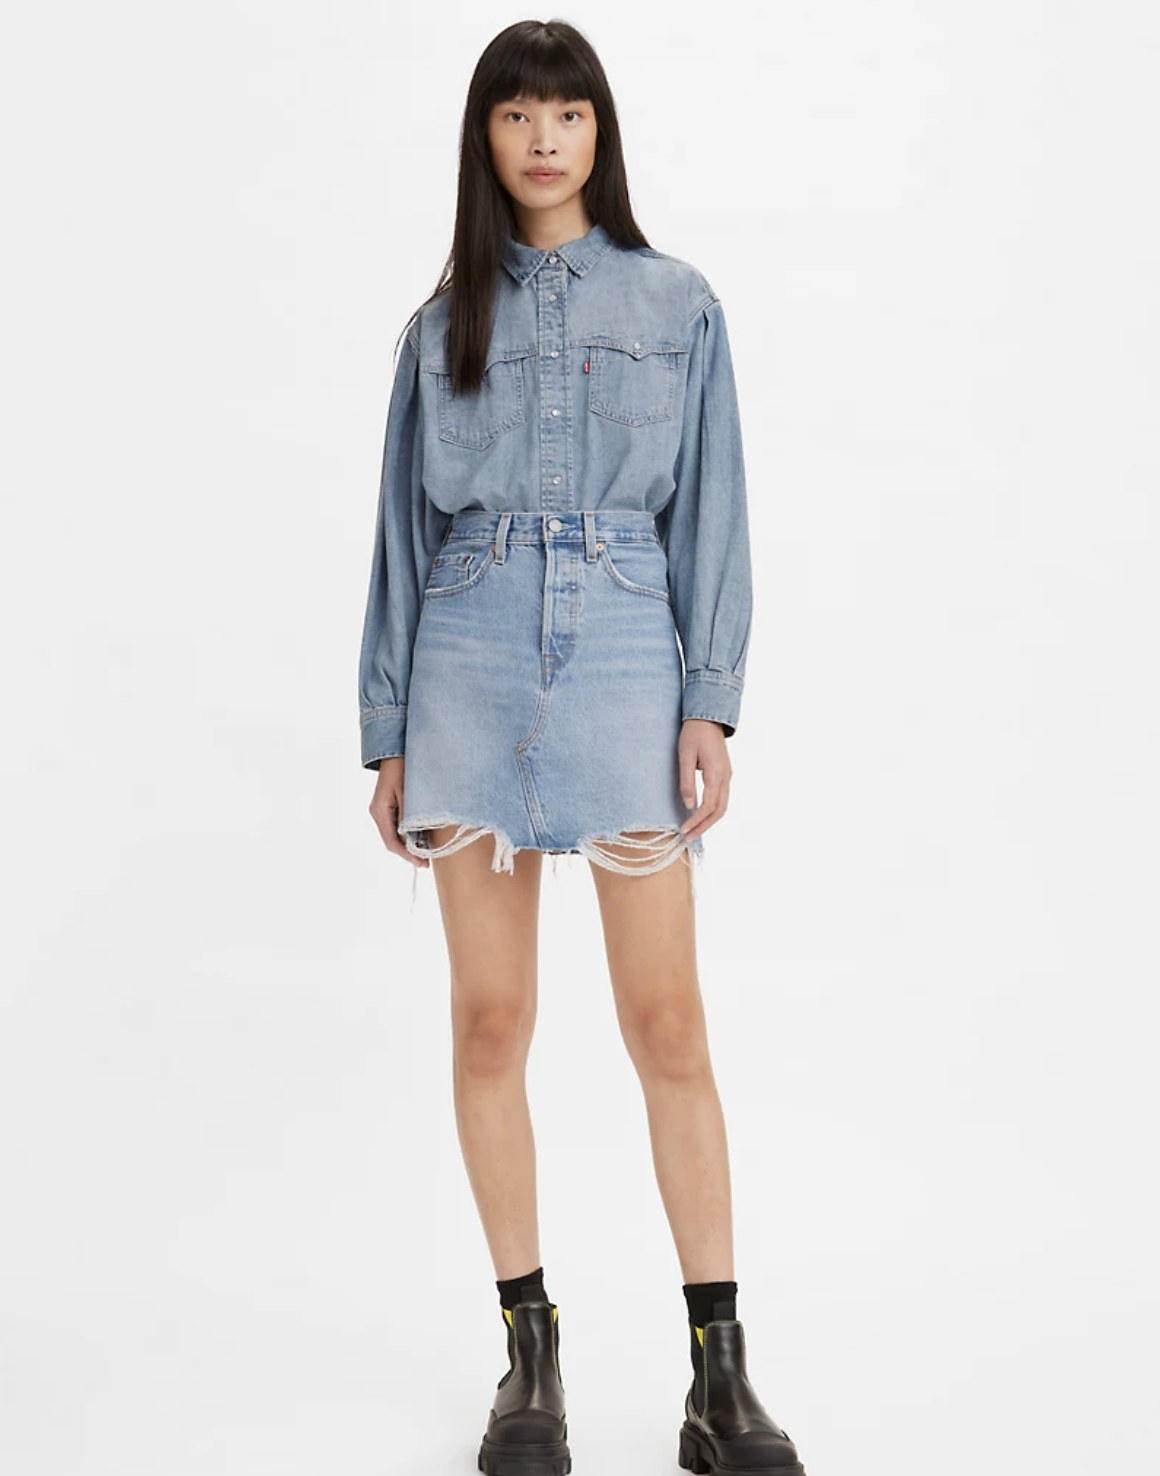 Model is wearing a deconstructed denim skirt with a denim top